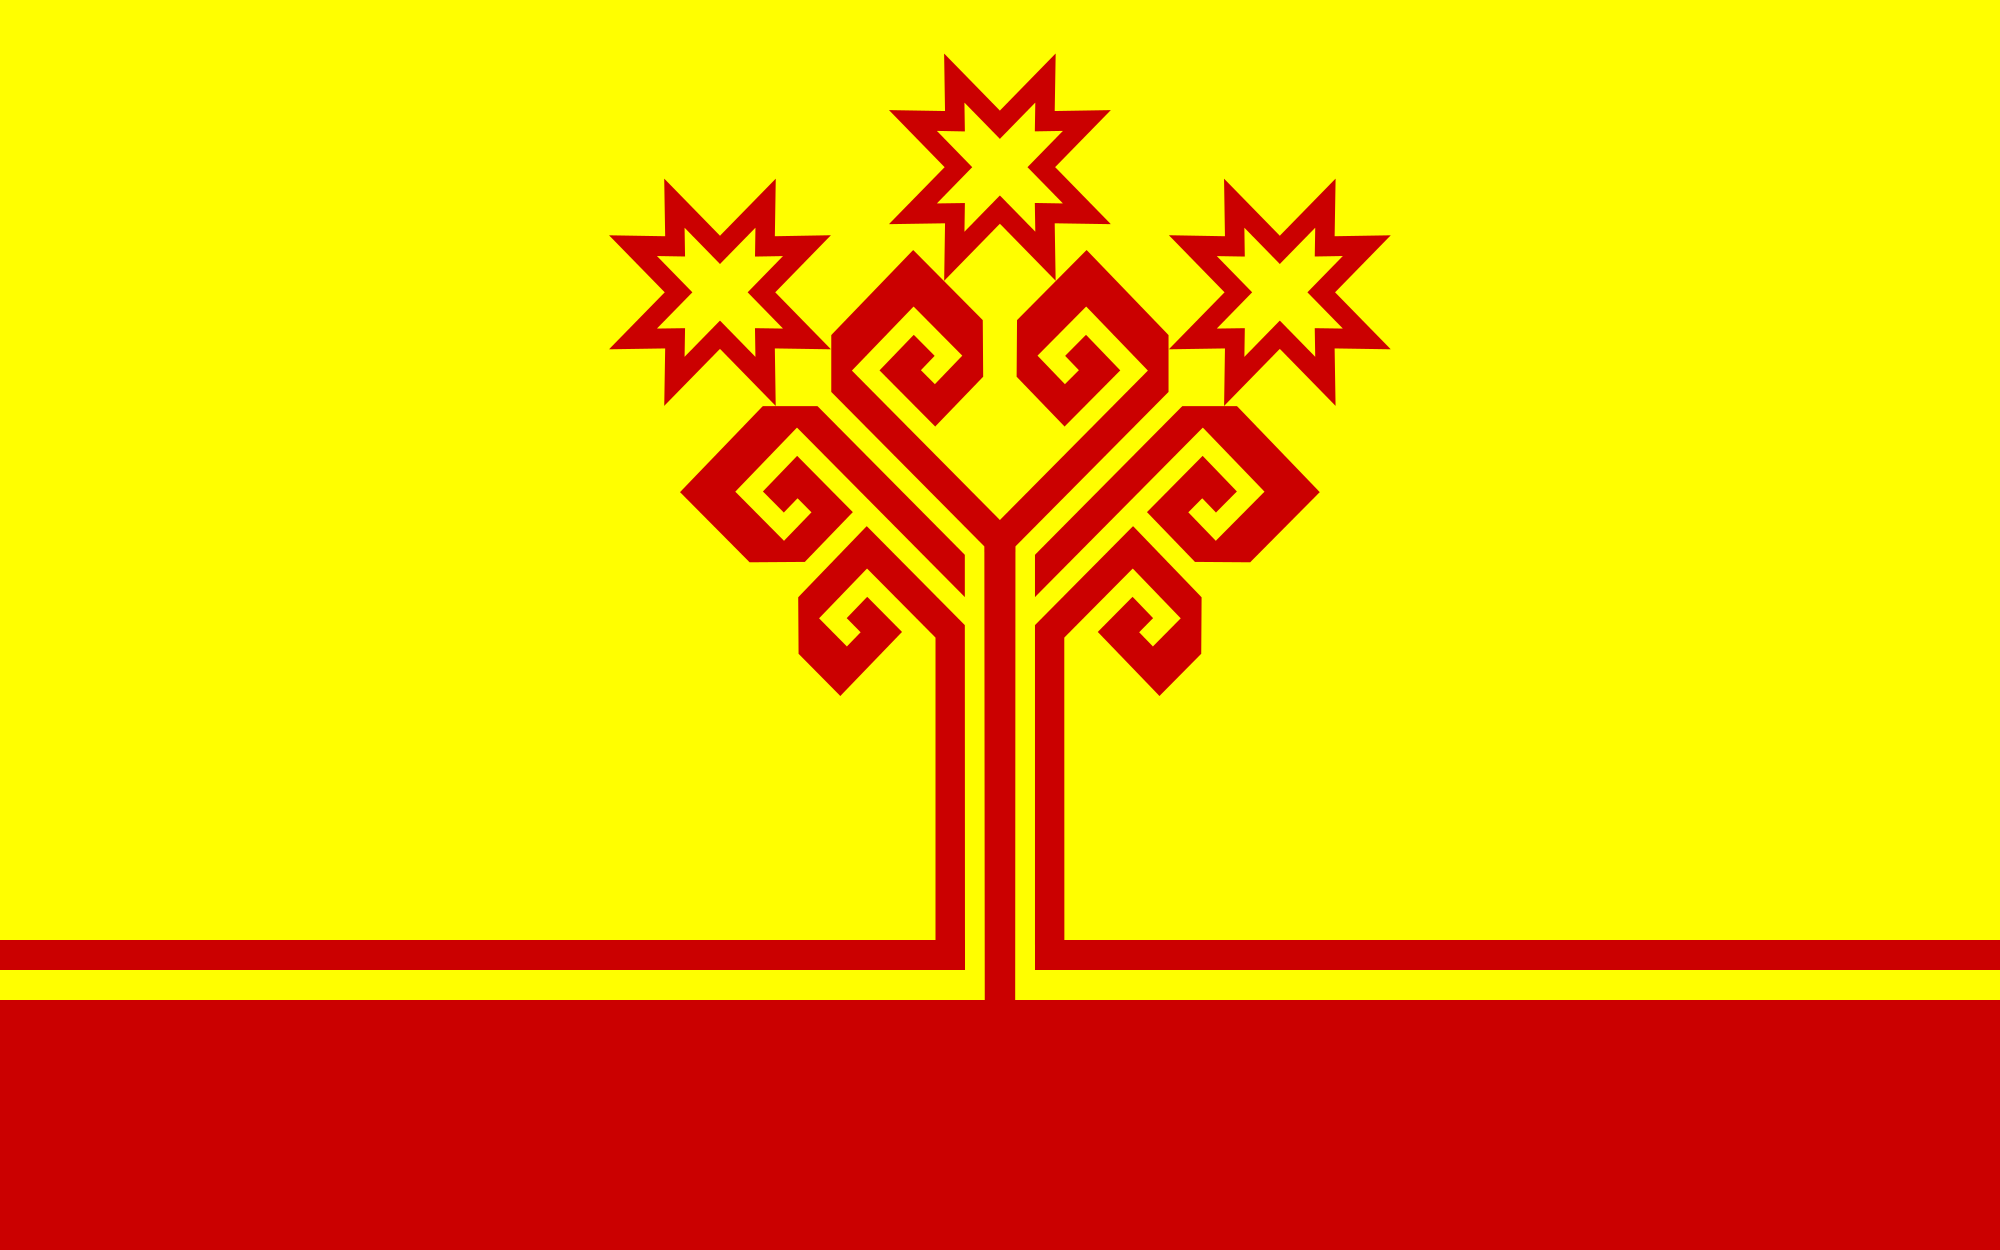 the flag of the chuvash republic a federal subject of russia is